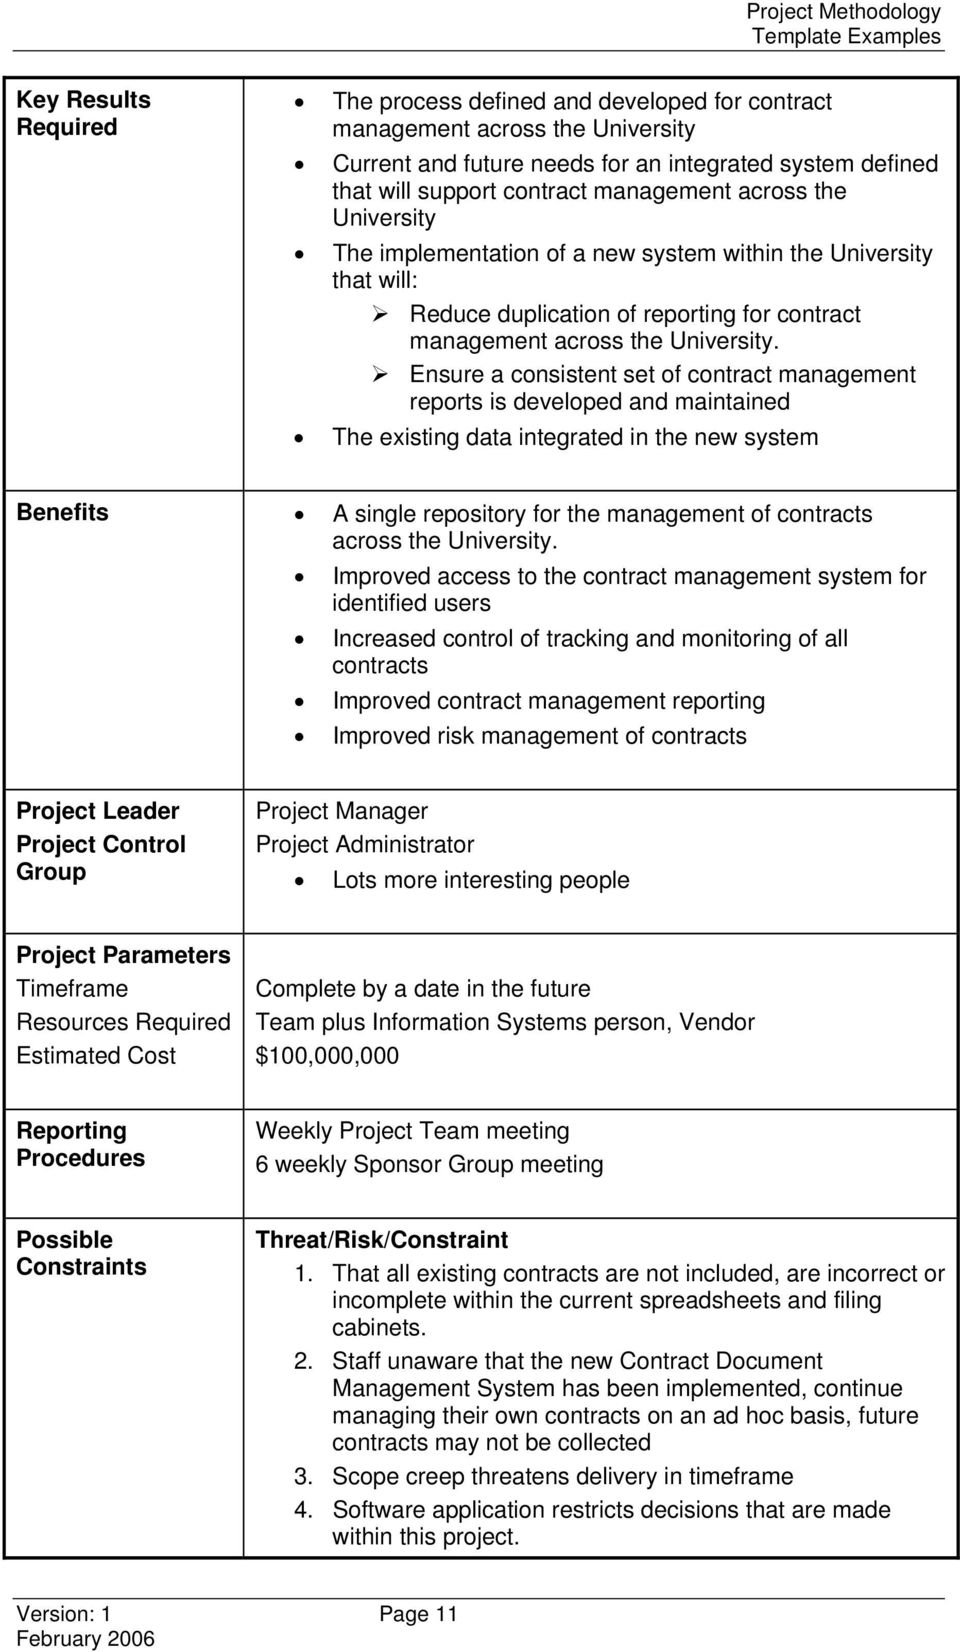 project management methodology template - projects office tari kaupapa project methodology template